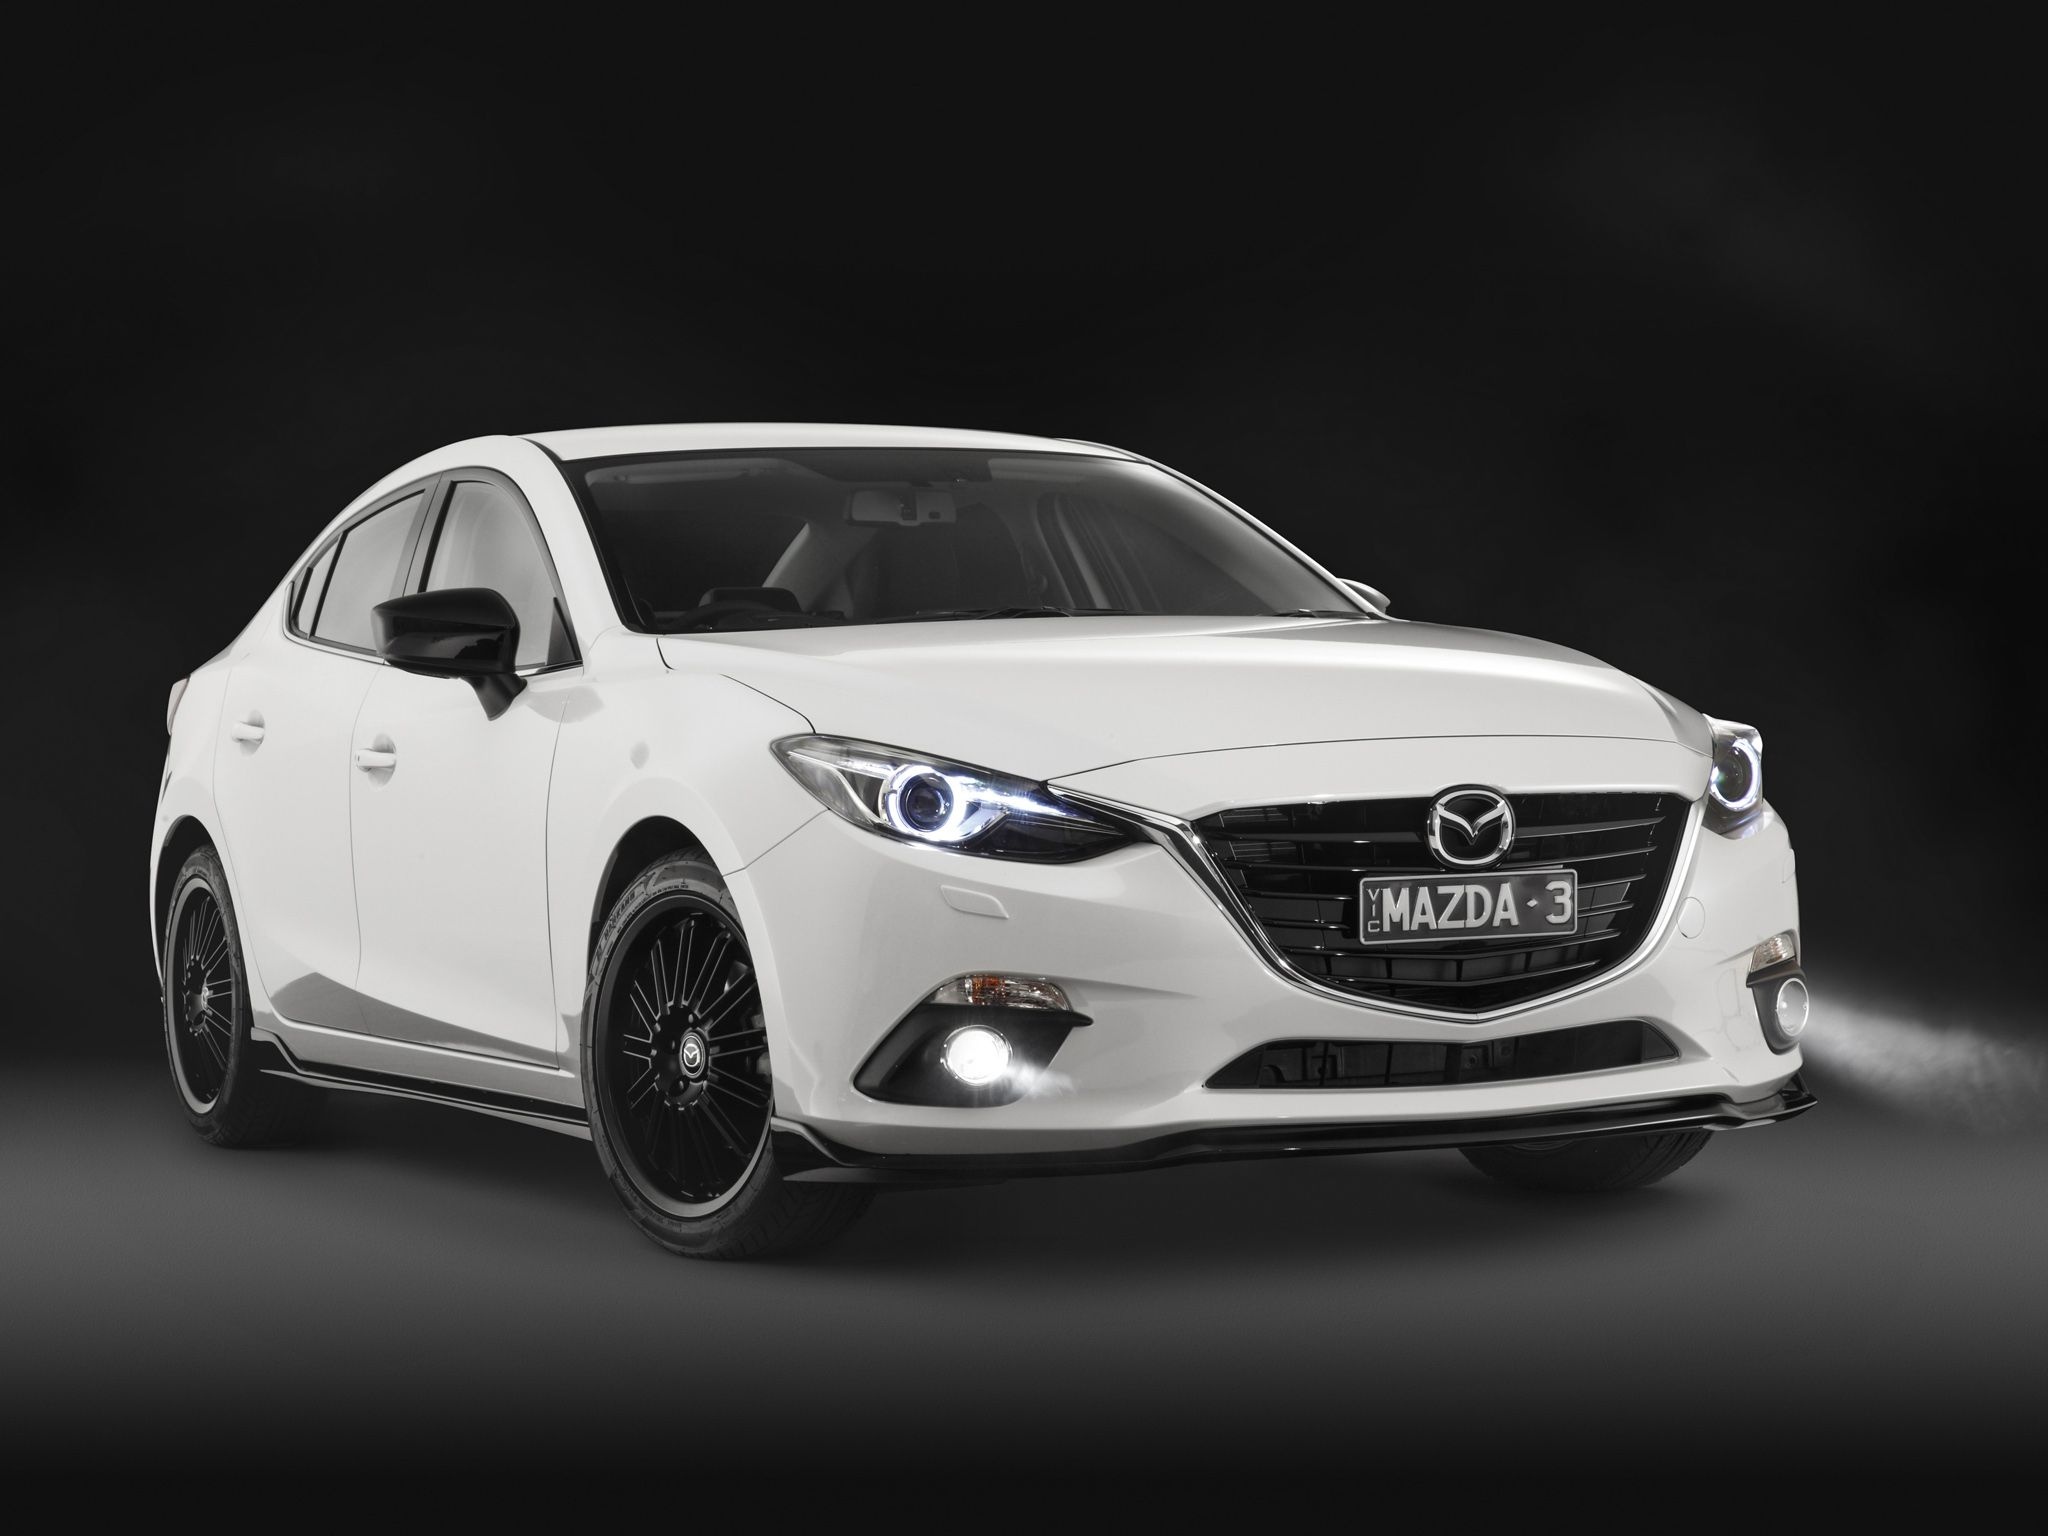 Mazda3 Sedan 2014 | C_Cars | simply WHITE | Pinterest ...2014 Mazda 3 White